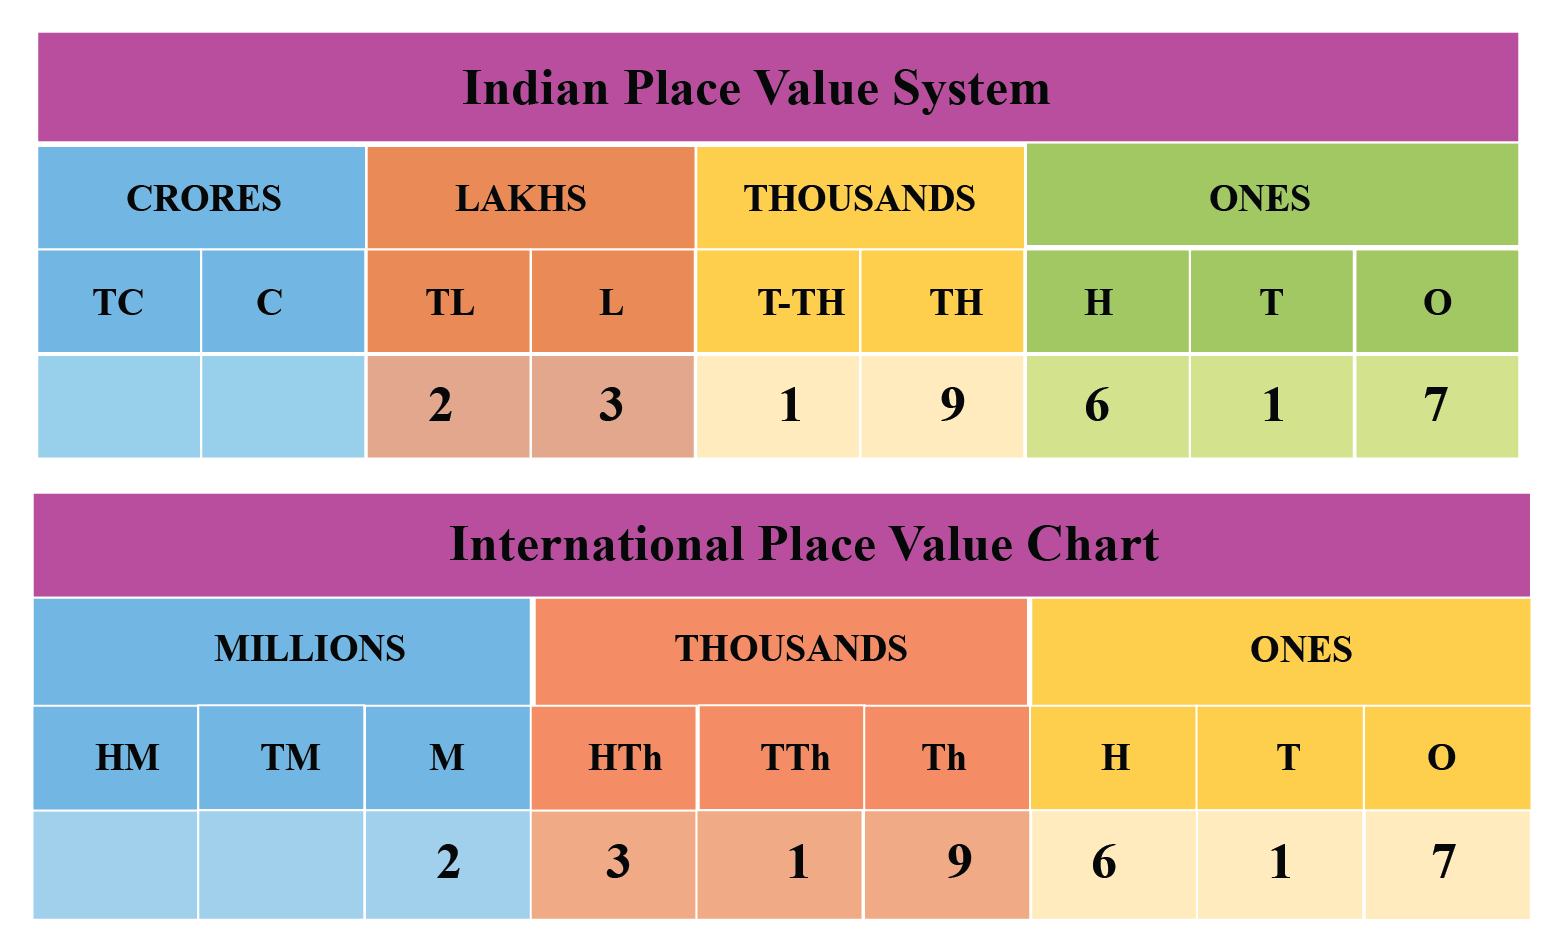 Indian place value chart example: The number 2319617 is arranged in the Indian Place Value Chart and International Place Value Chart.